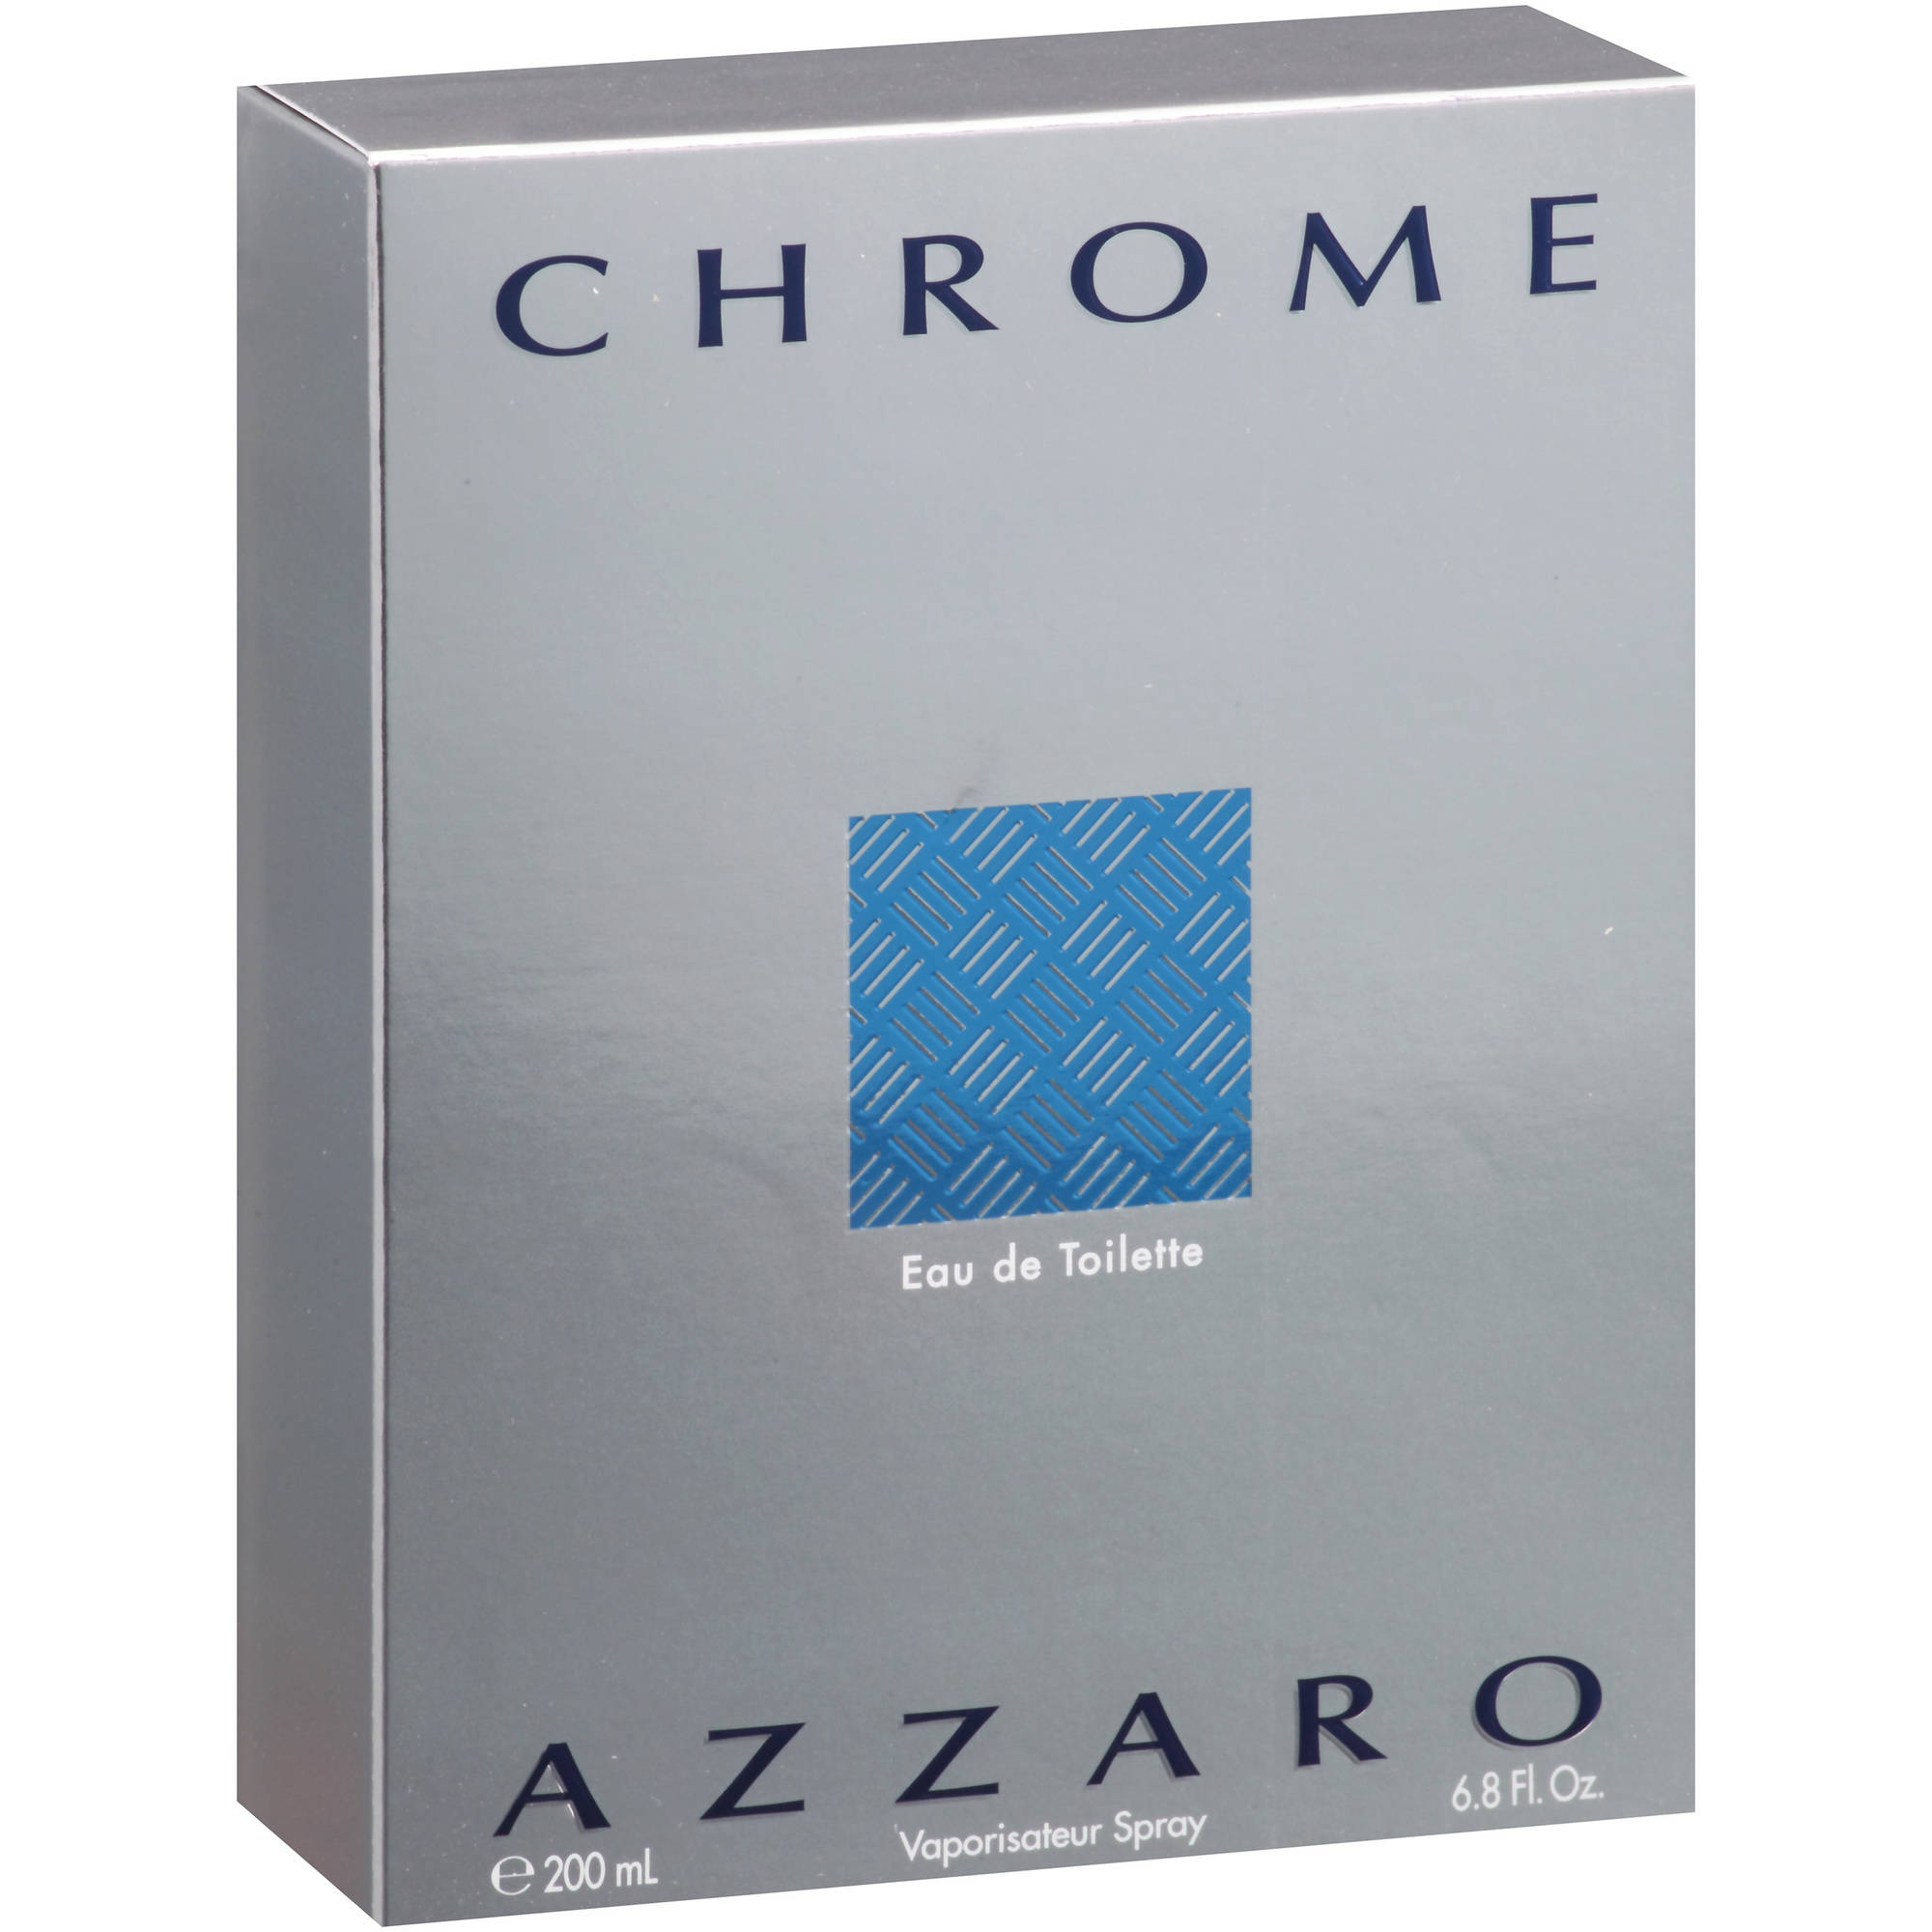 Azzaro Chrome Eau de Toilette 6.8 oz Spray Men